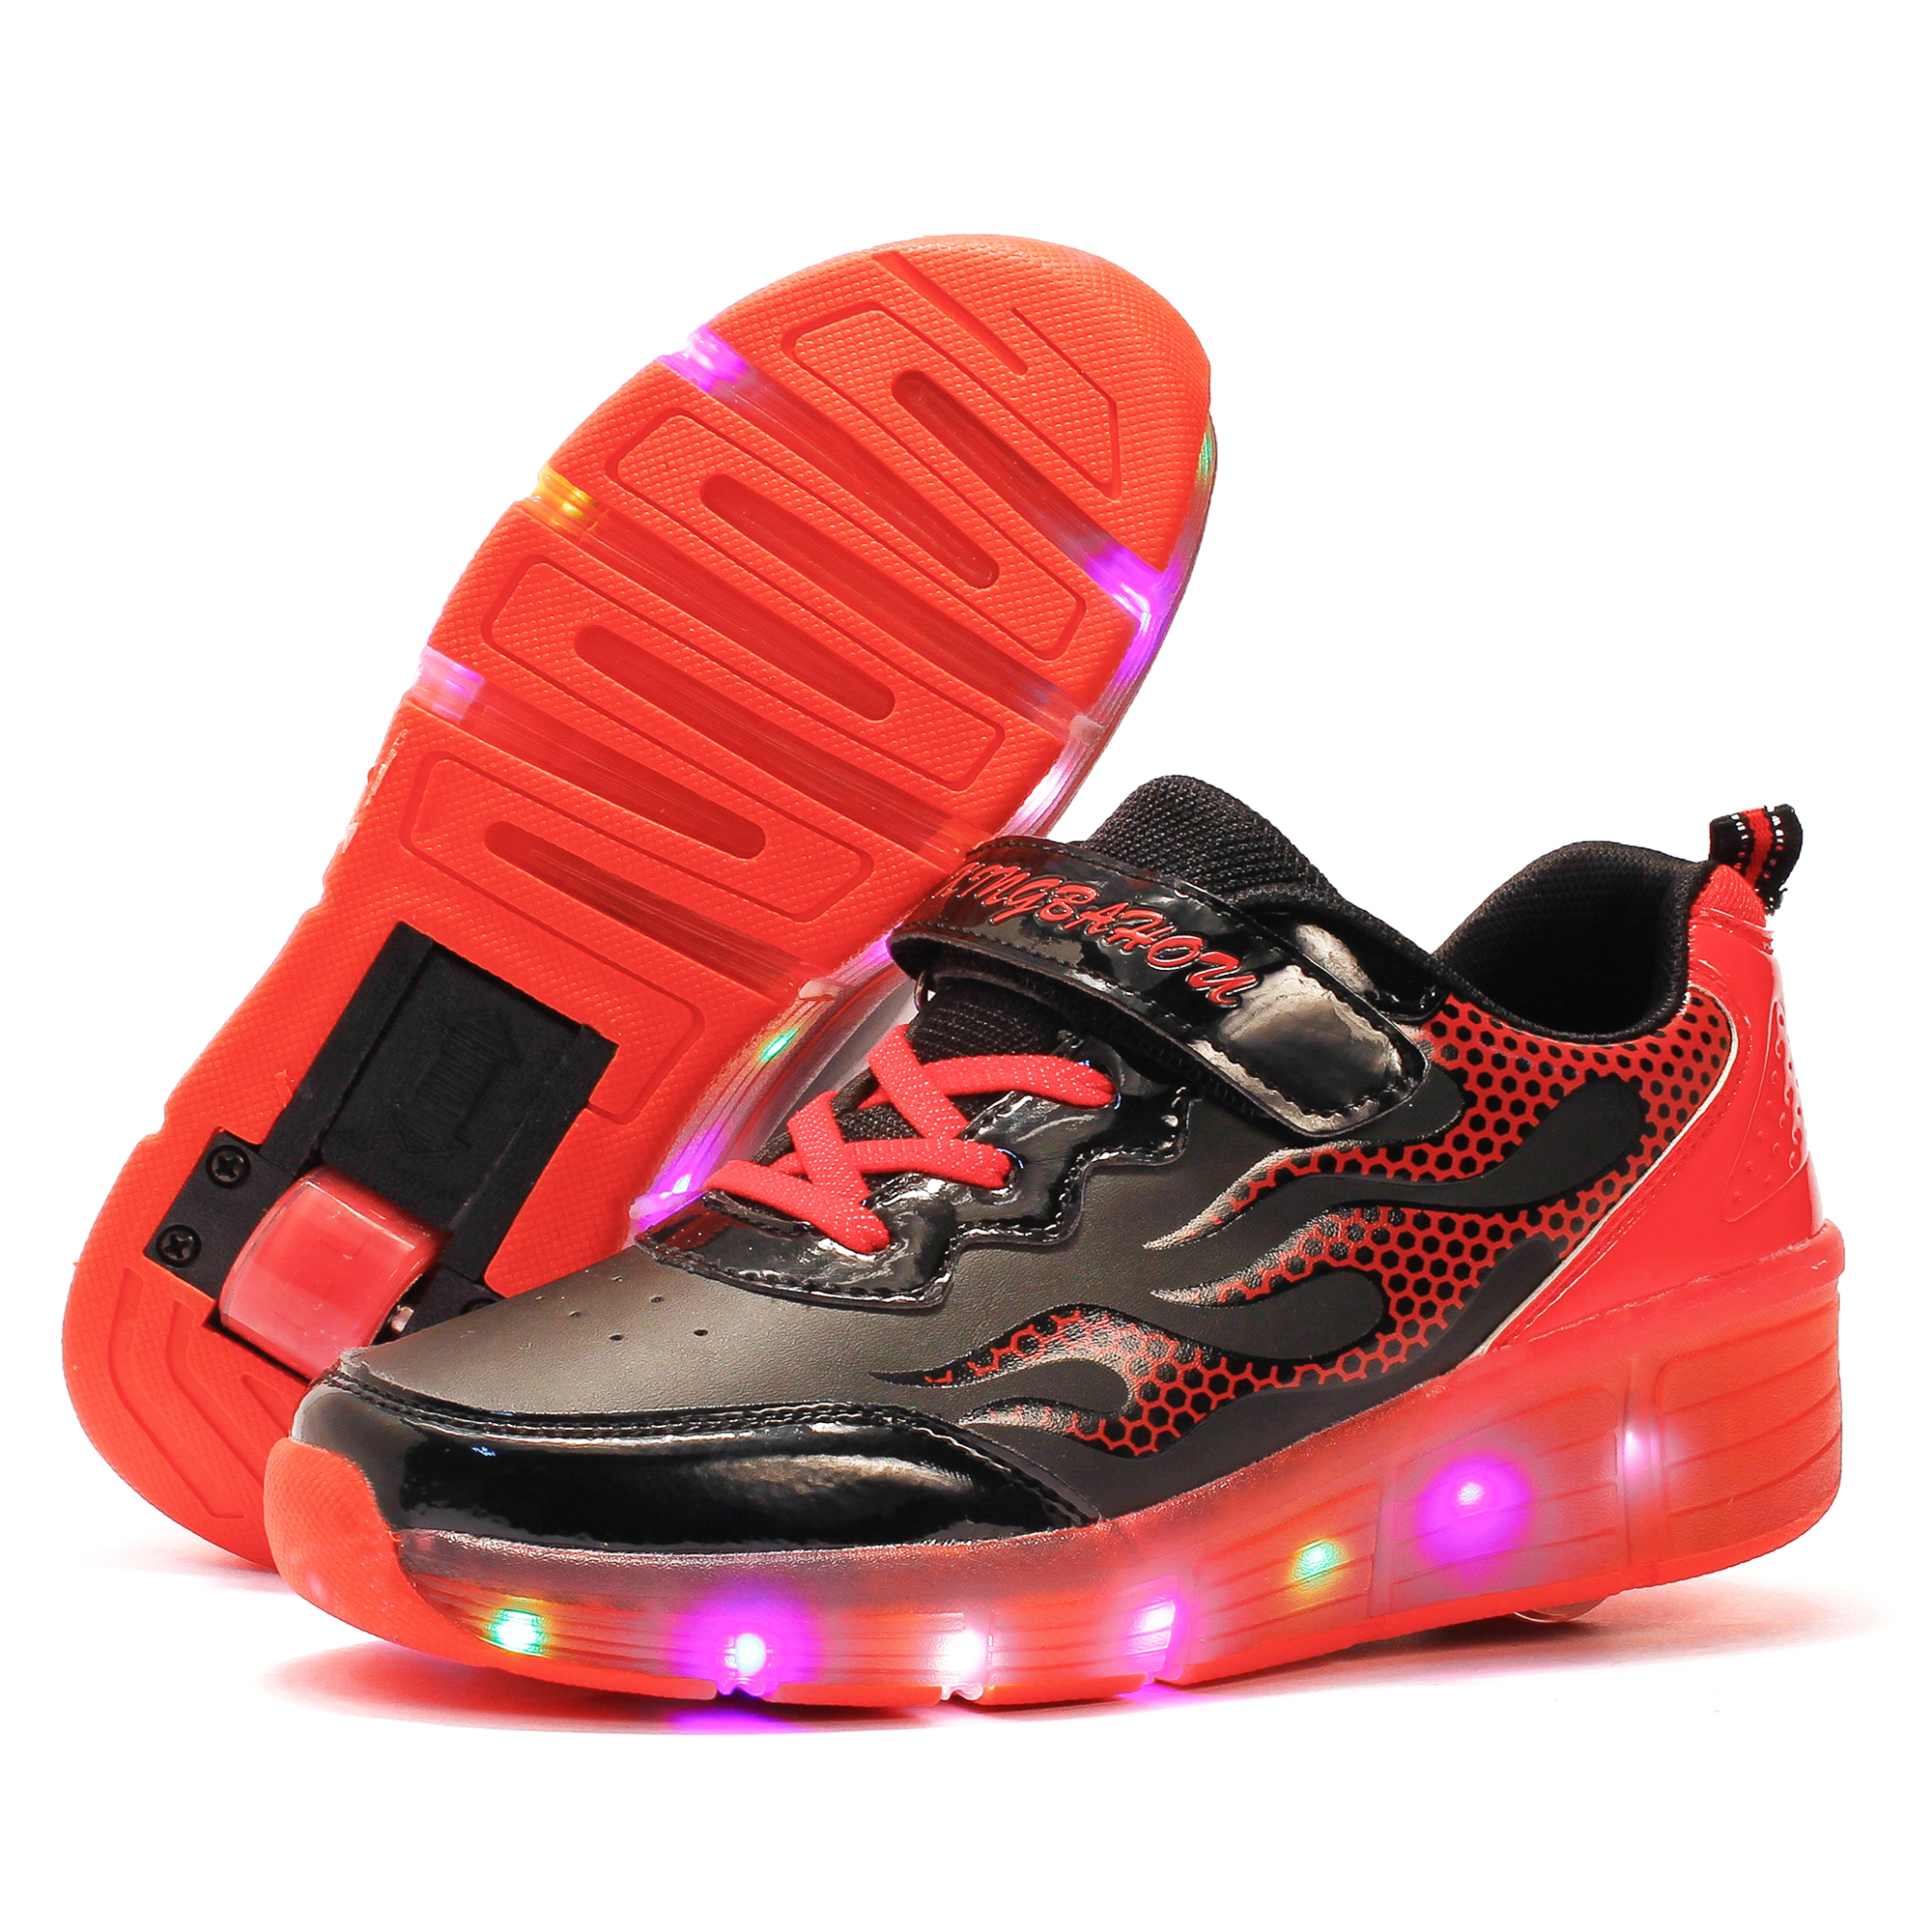 Colorful LED Flashing Roller Skate Shoes Flashing LED Roller Shoes Luminous Sneakers Boy Girl Light Up Shoes children roller sneaker with one wheel led lighted flashing roller skates kids boy girl shoes zapatillas con ruedas